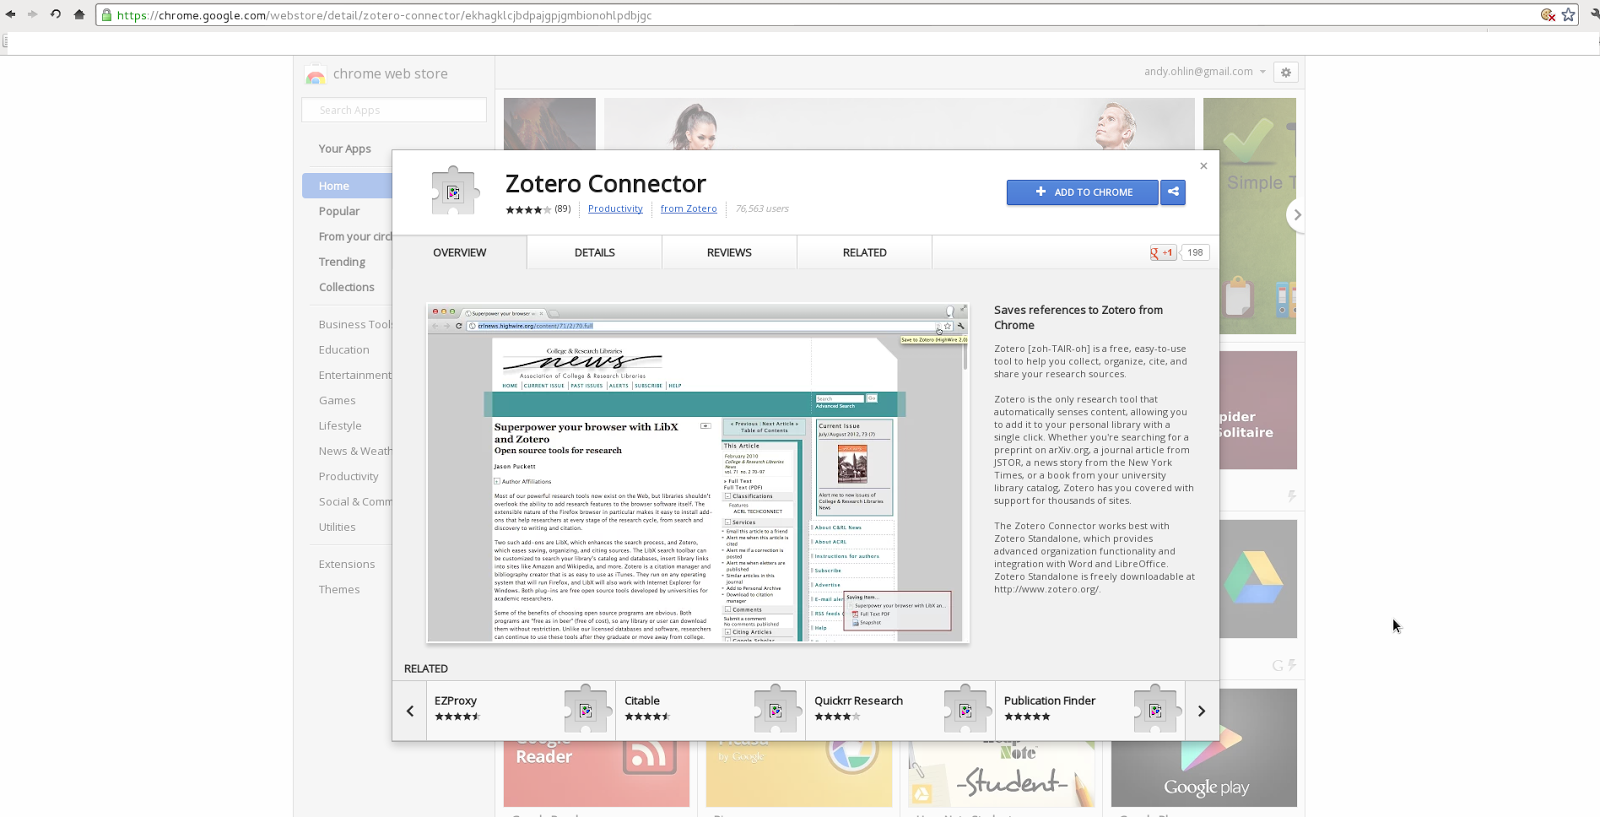 To Make It Work In Chrome, Install The Extension